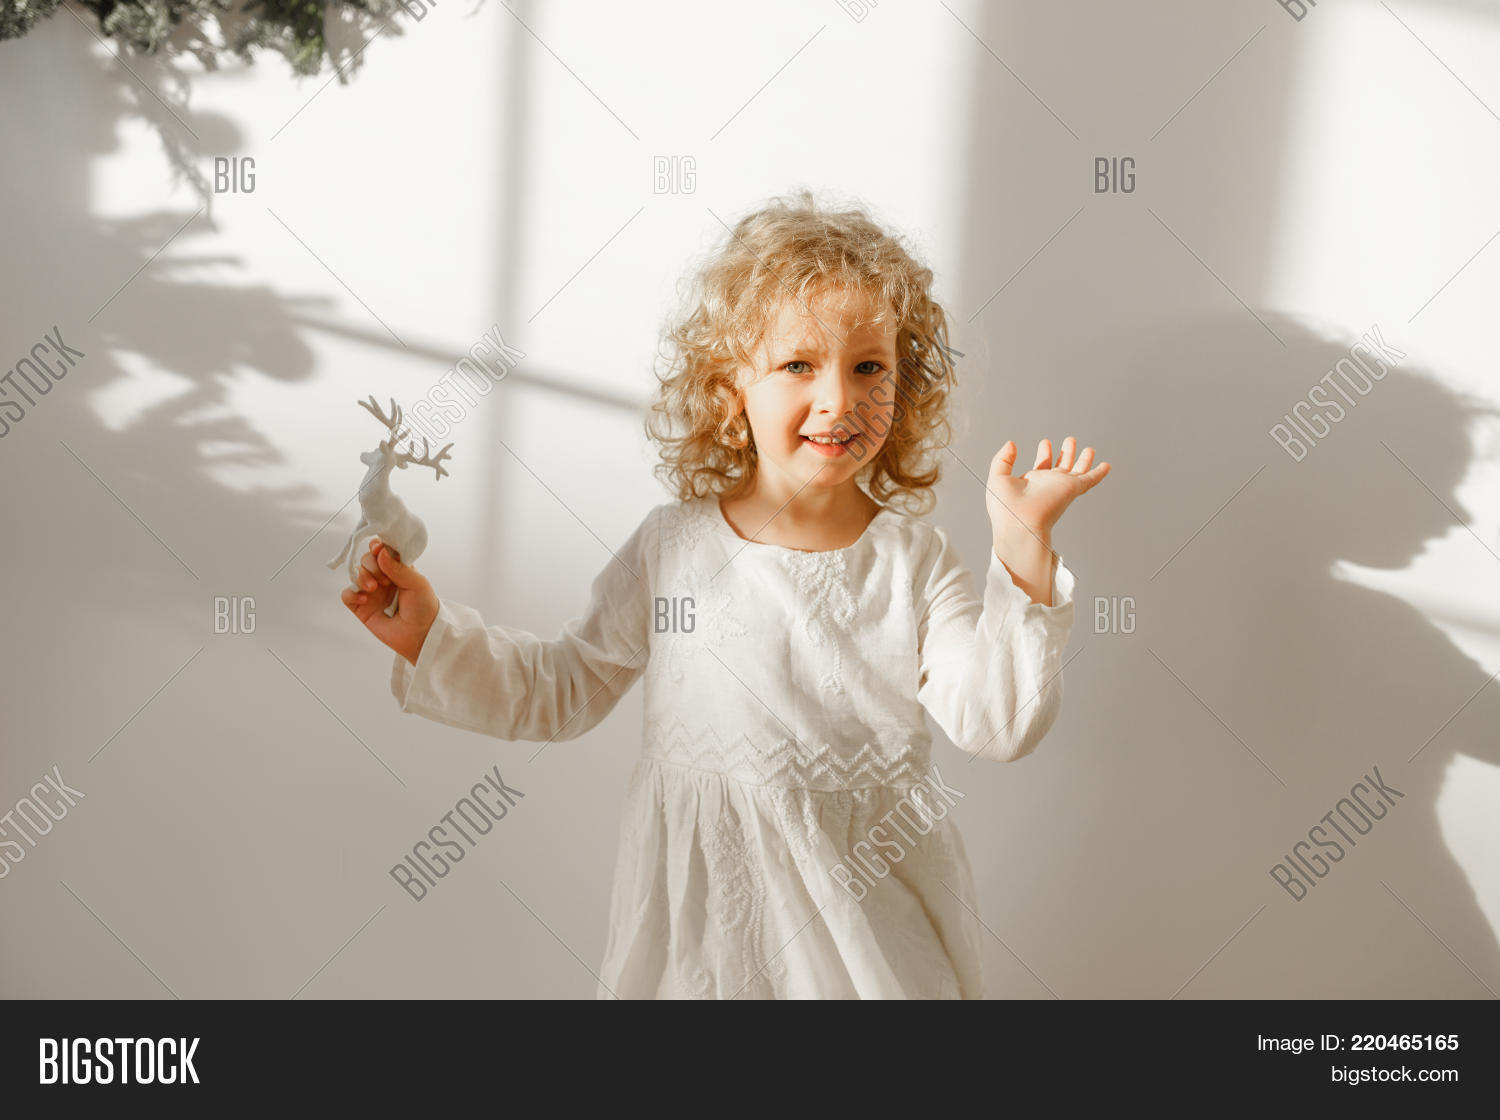 219f281a2028 Playful cheerful little beautiful girl with blonde curly hair plays with  toy deer, dressed in